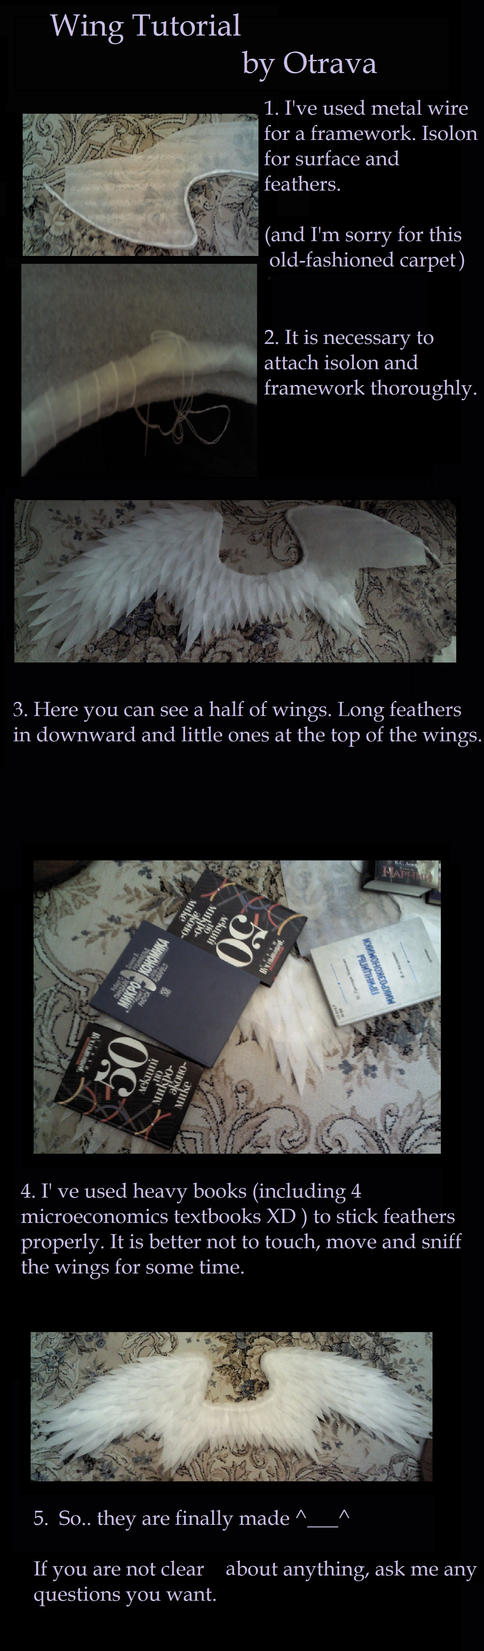 Wings tutorial by Otrava by OtravaSchneewittchen